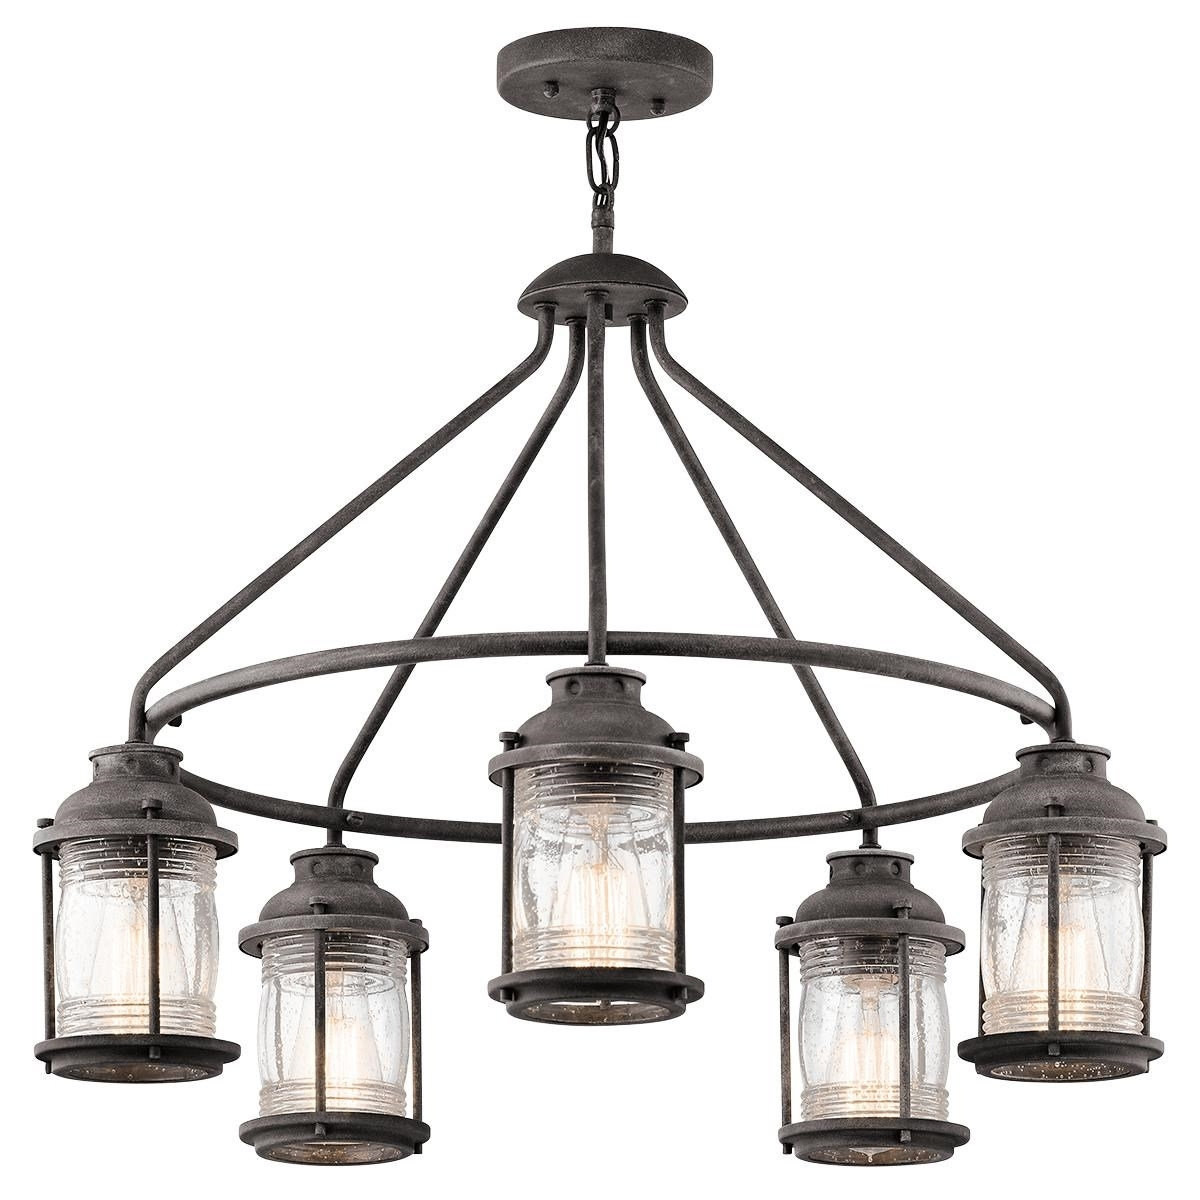 Kichler 49667Wzc Ashland Bay Outdoor Pendant Light In Weathered Zinc With 2019 Outdoor Pendant Kichler Lighting (View 4 of 20)